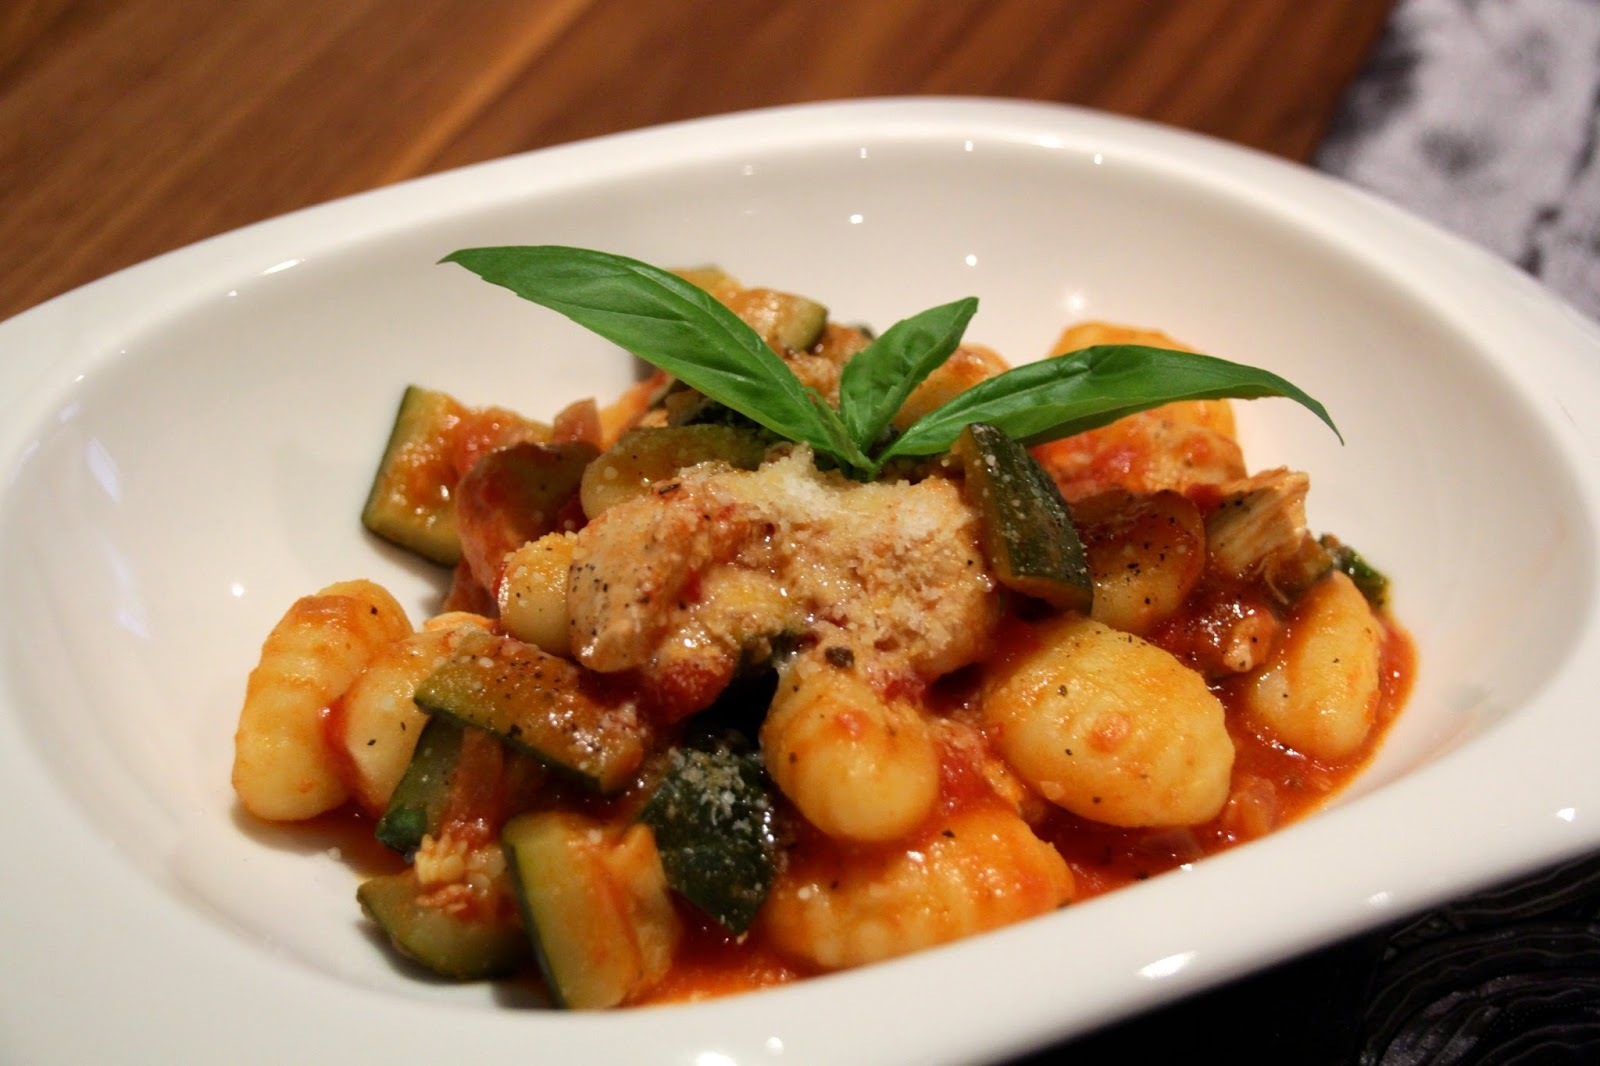 Gnocchi with chicken & courgette sauce